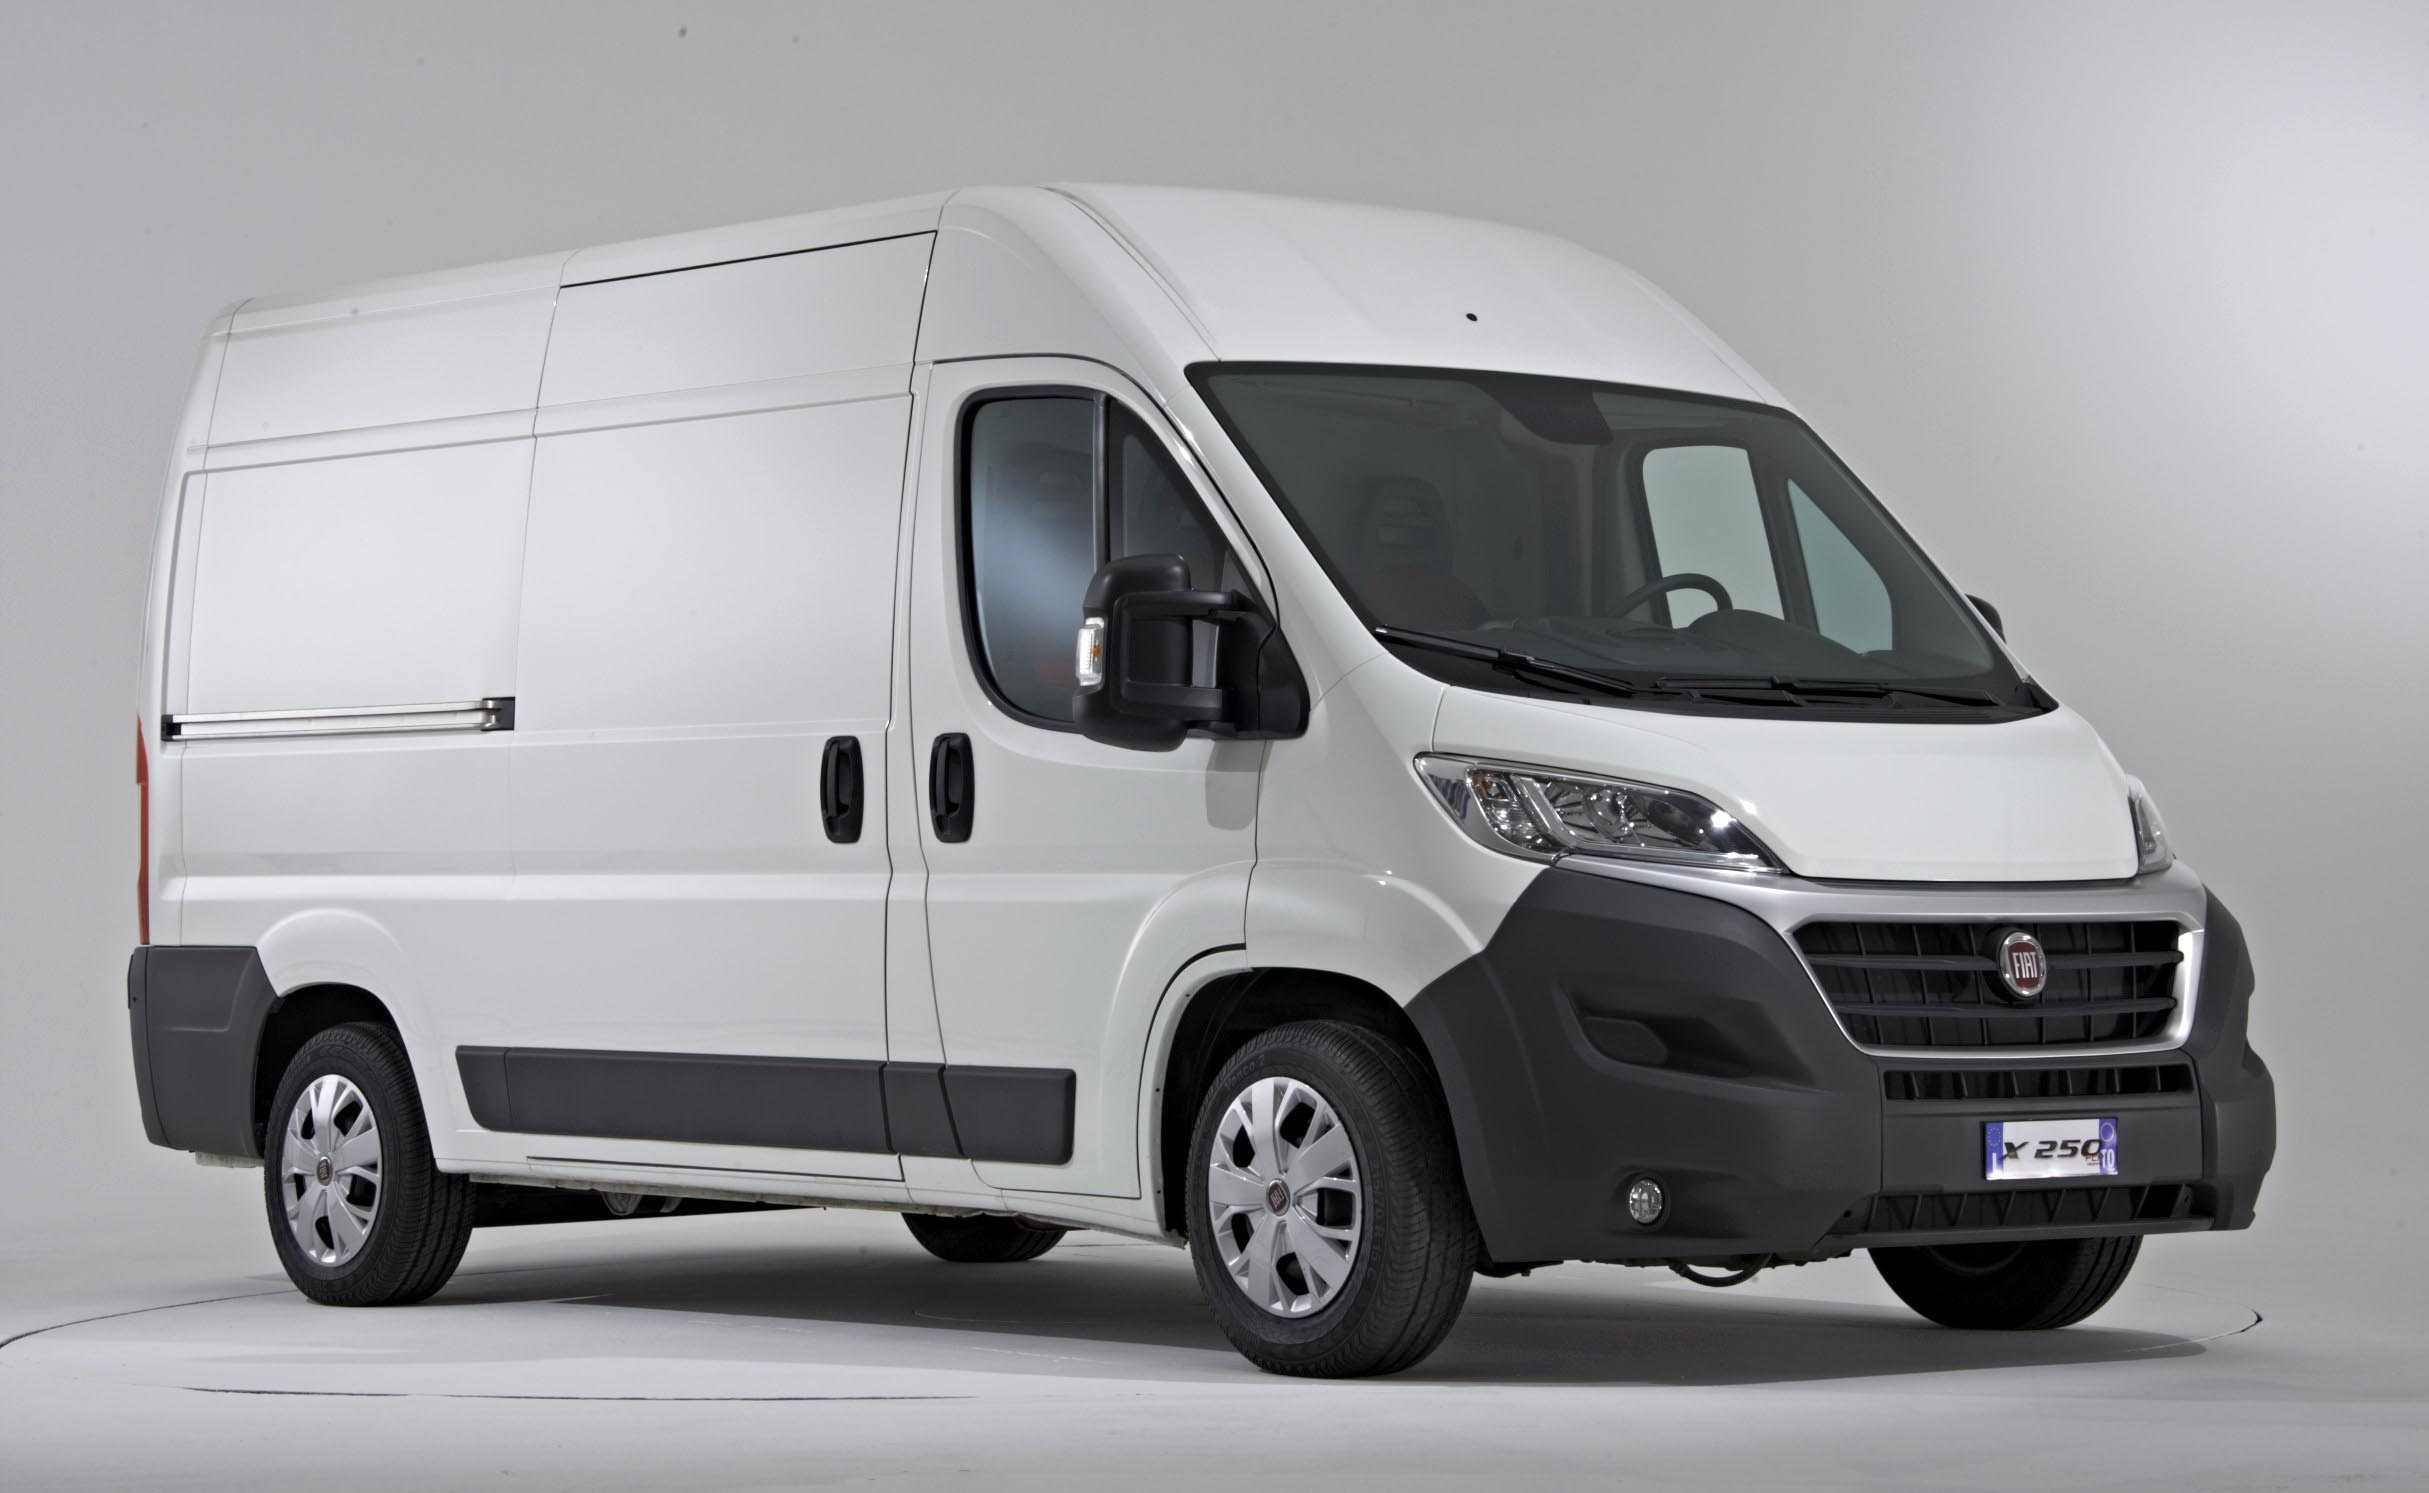 fiat ducato 2015 versatilidad para el transporte desde 397 900 hecho en m xico alvolante info. Black Bedroom Furniture Sets. Home Design Ideas